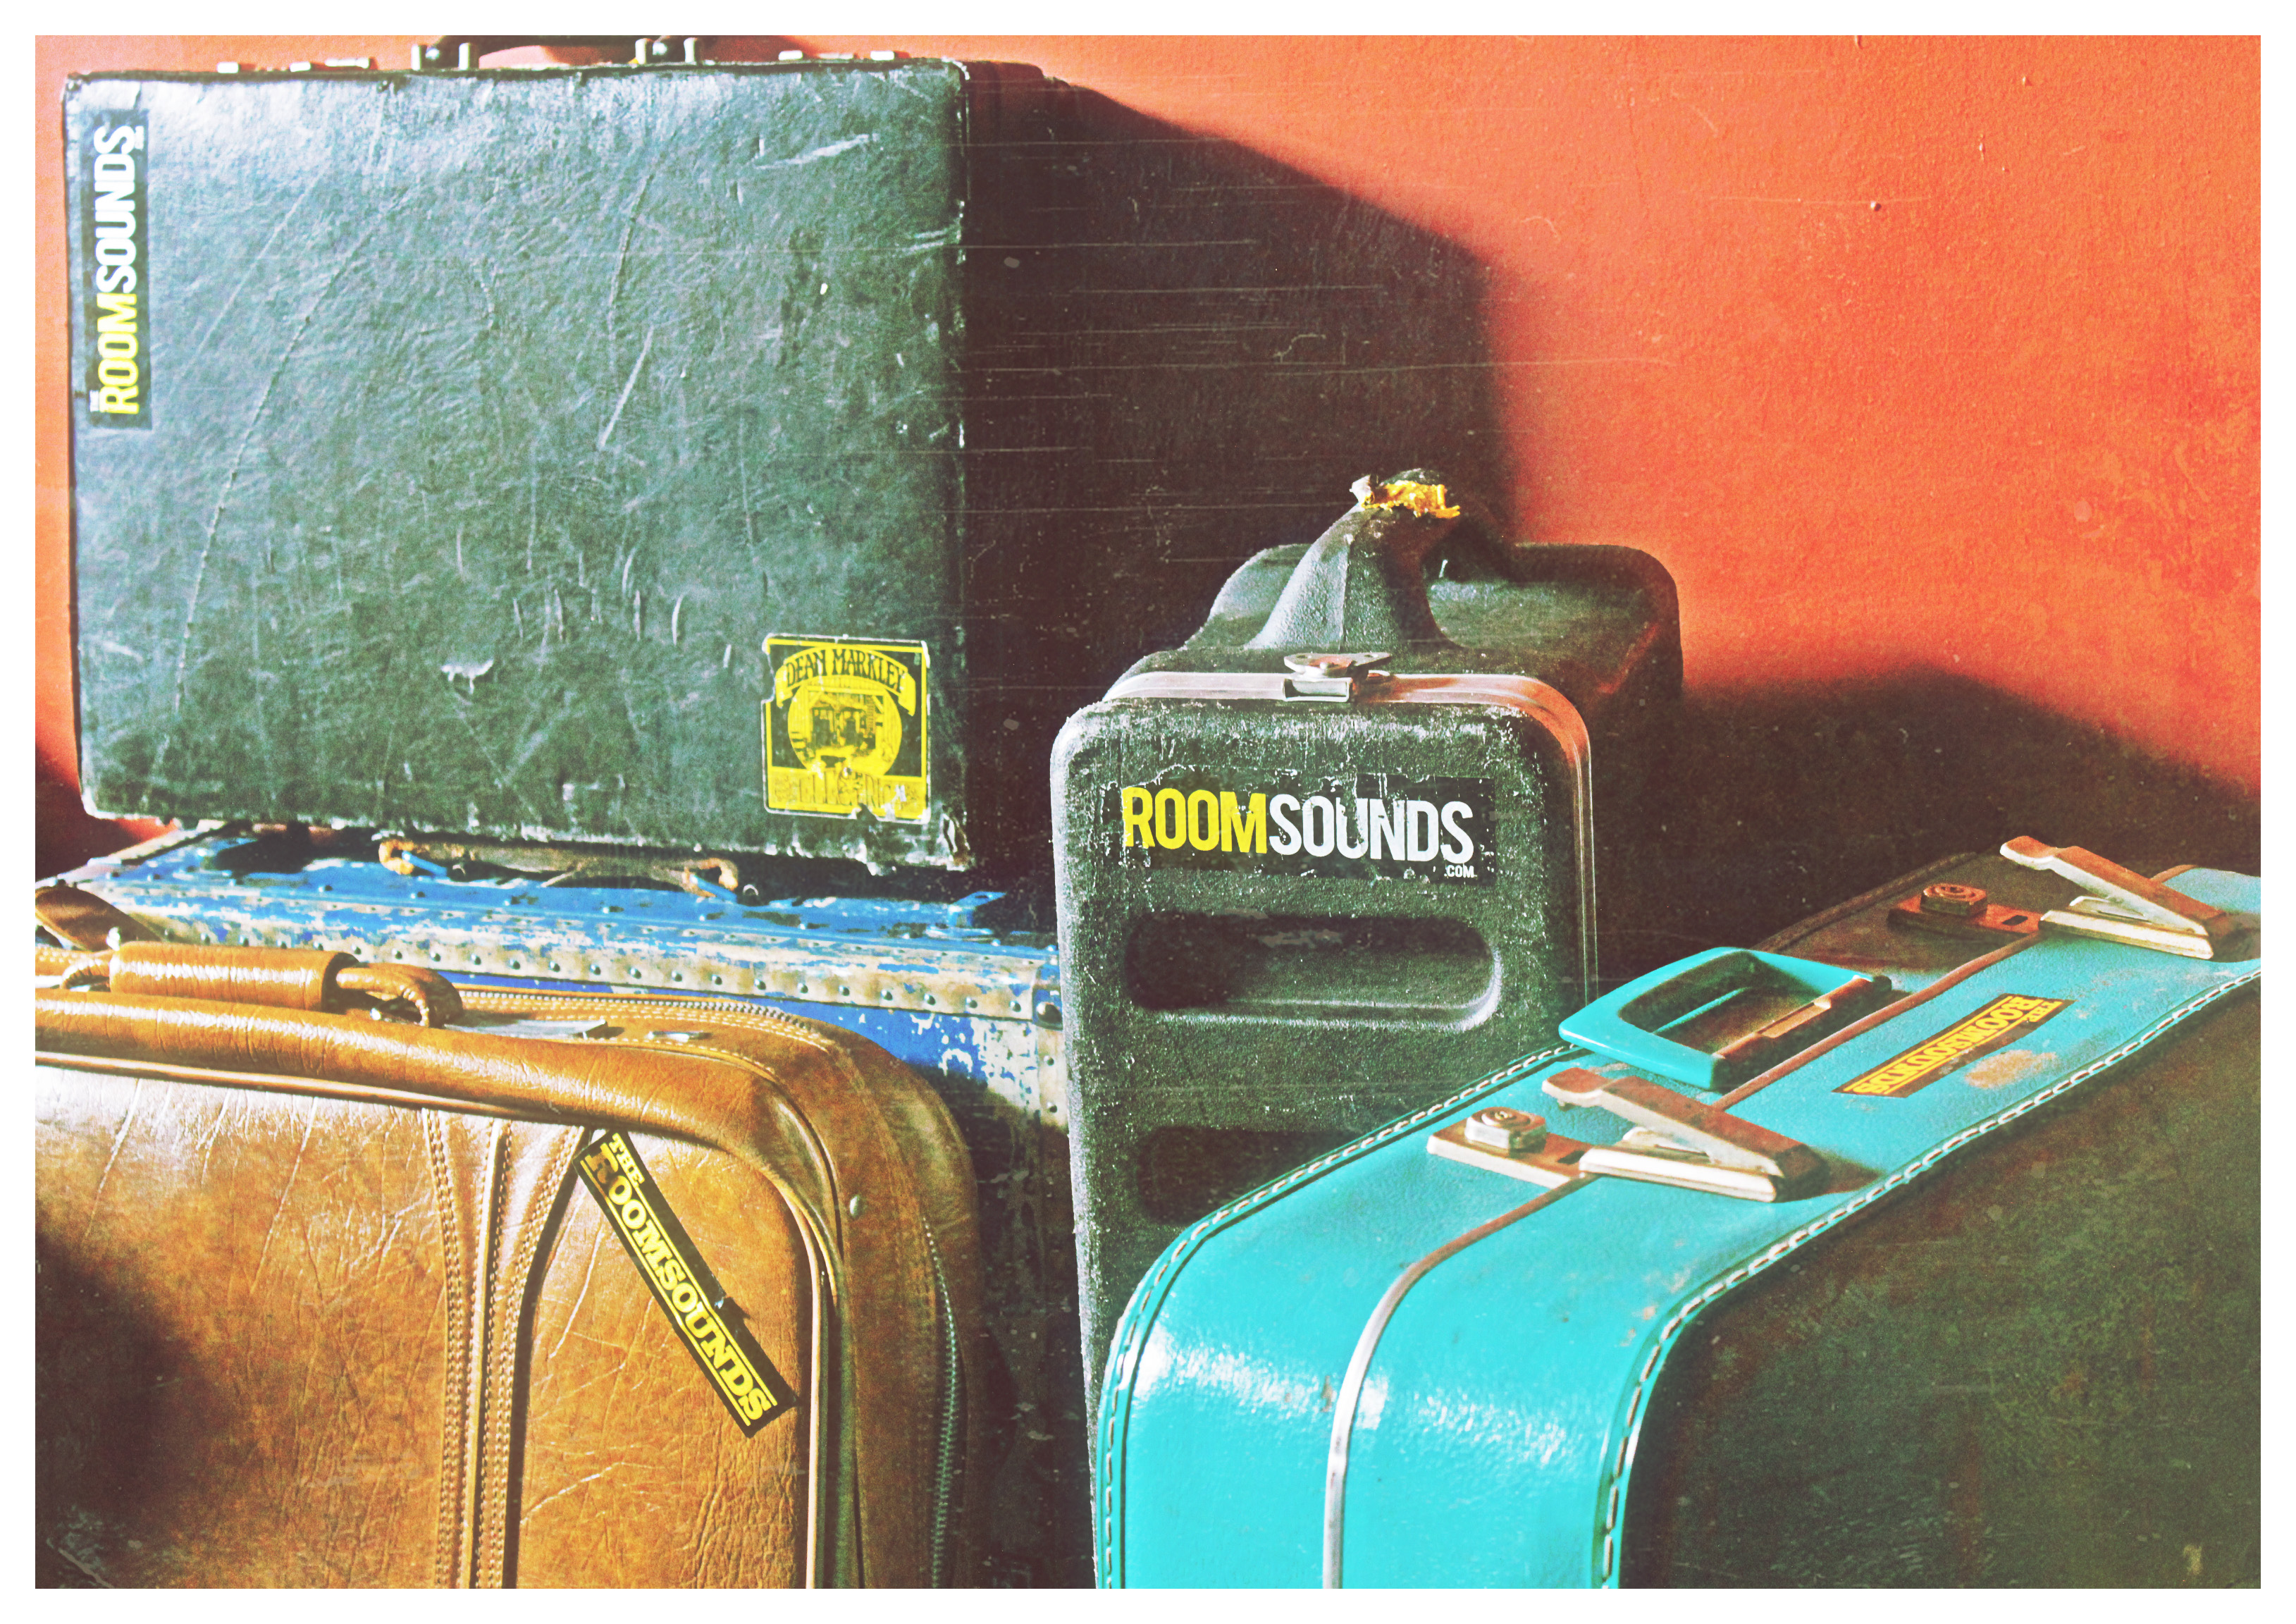 The Roomsounds Gear